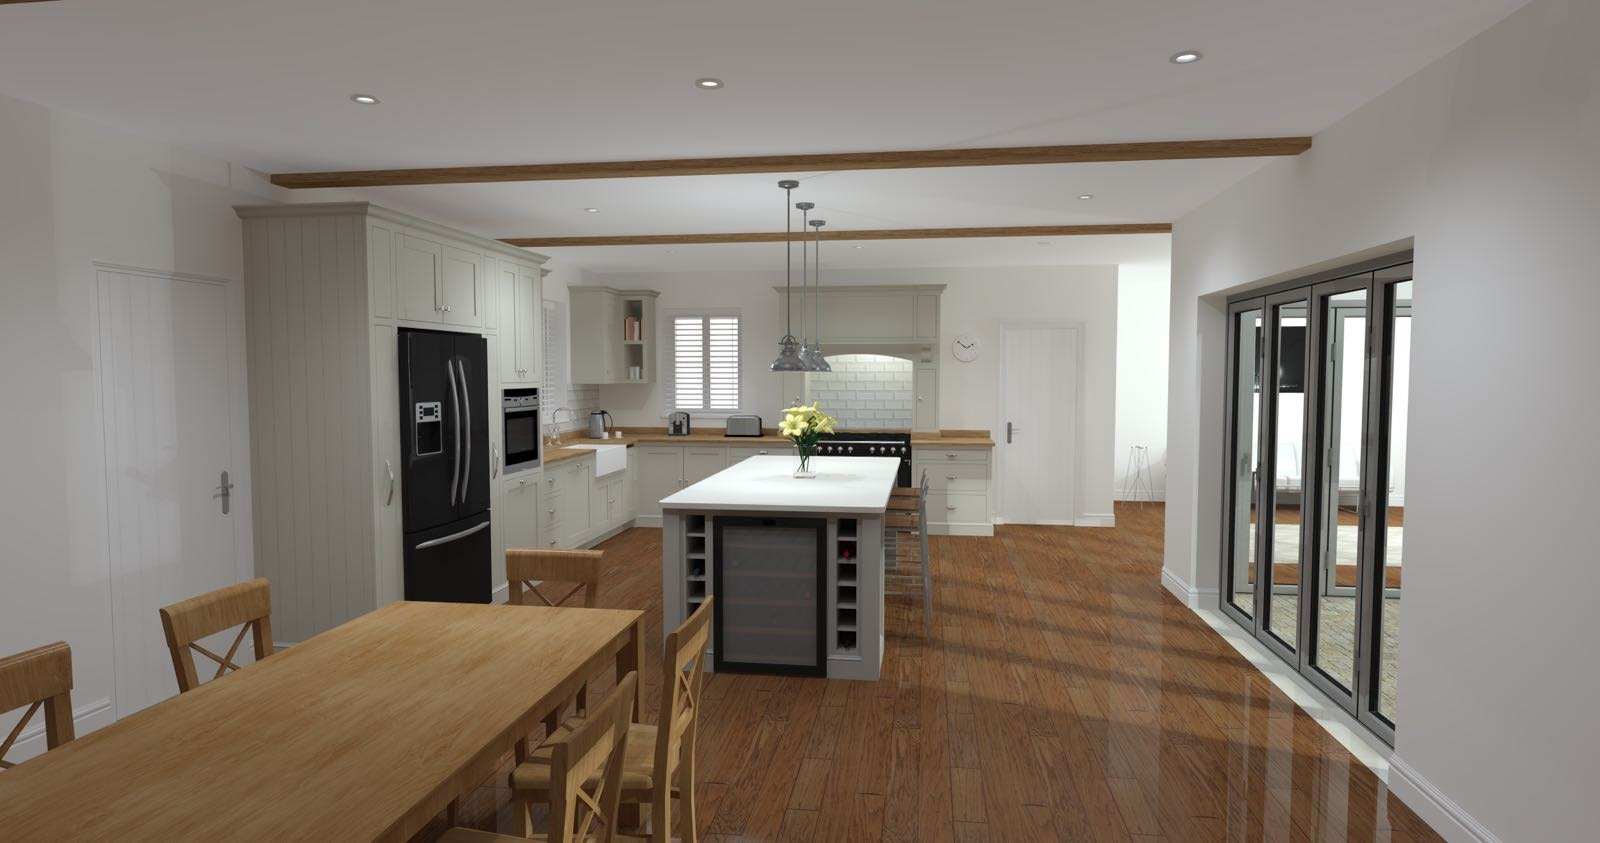 Shaker kitchen with dining room table